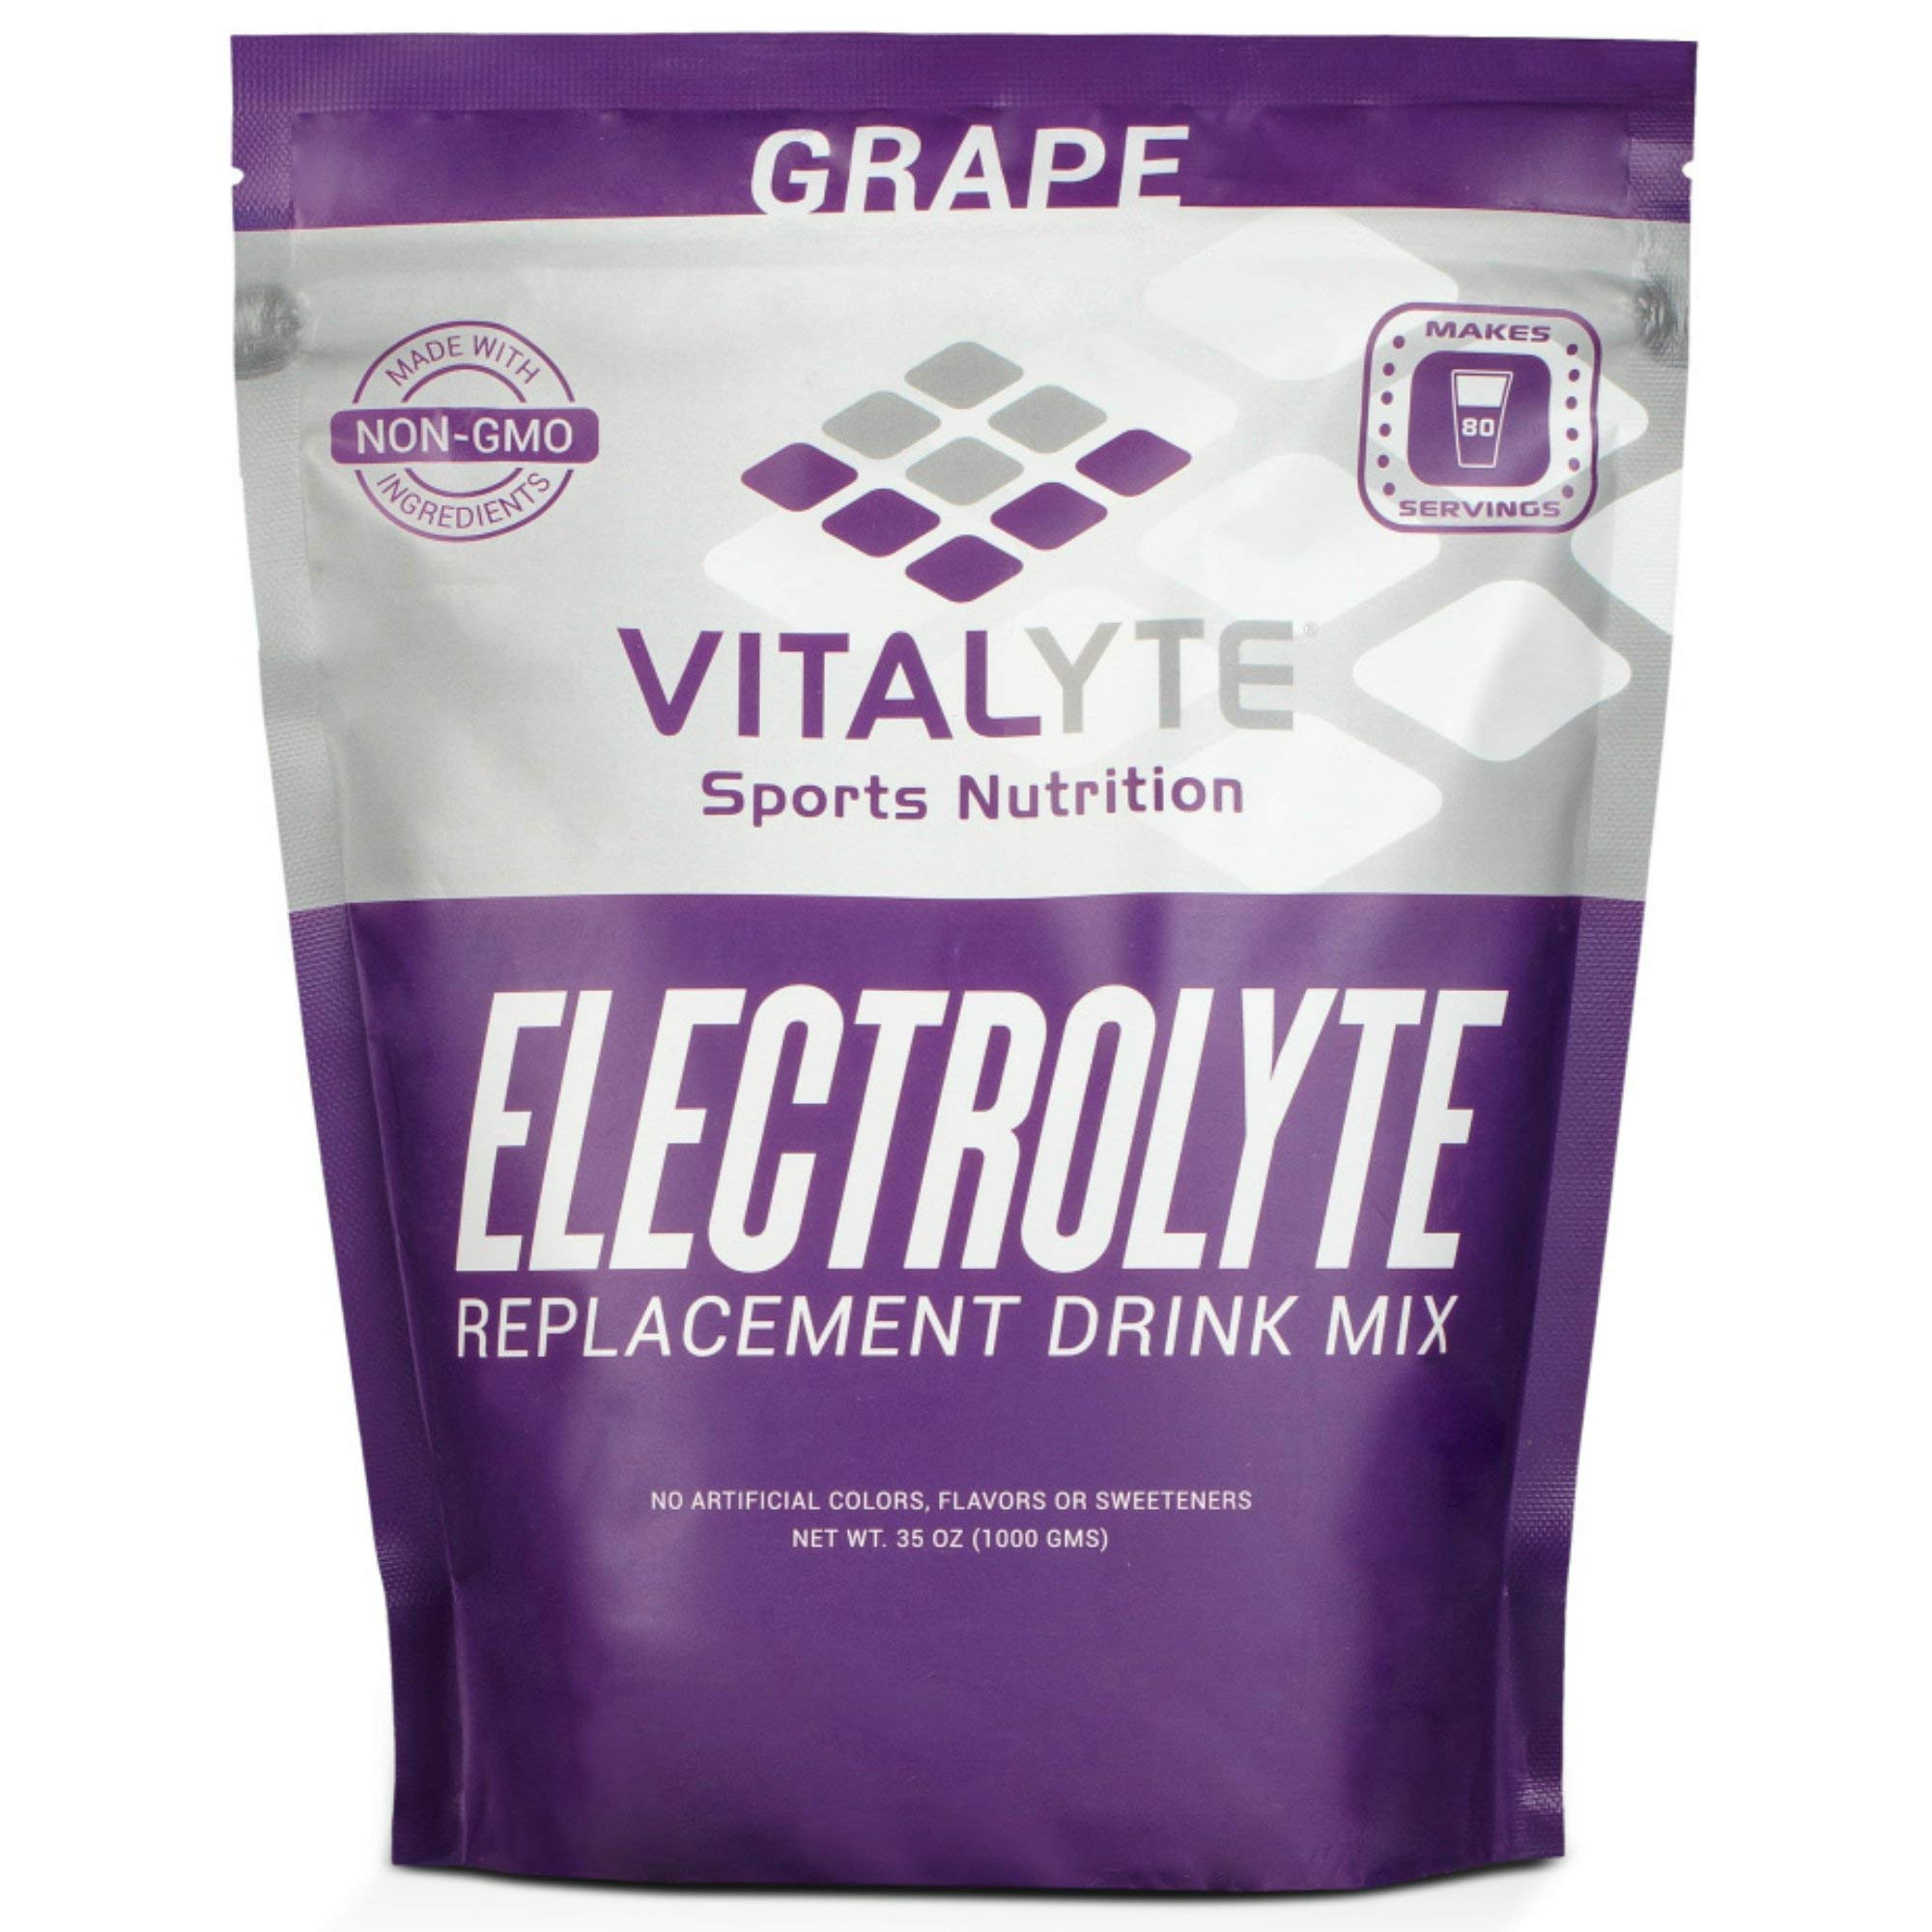 Vitalyte Natural Electrolyte Powder Drink Mix, Gluten Free, 40 2 Cup Servings Per Container (Grape-Pouch)